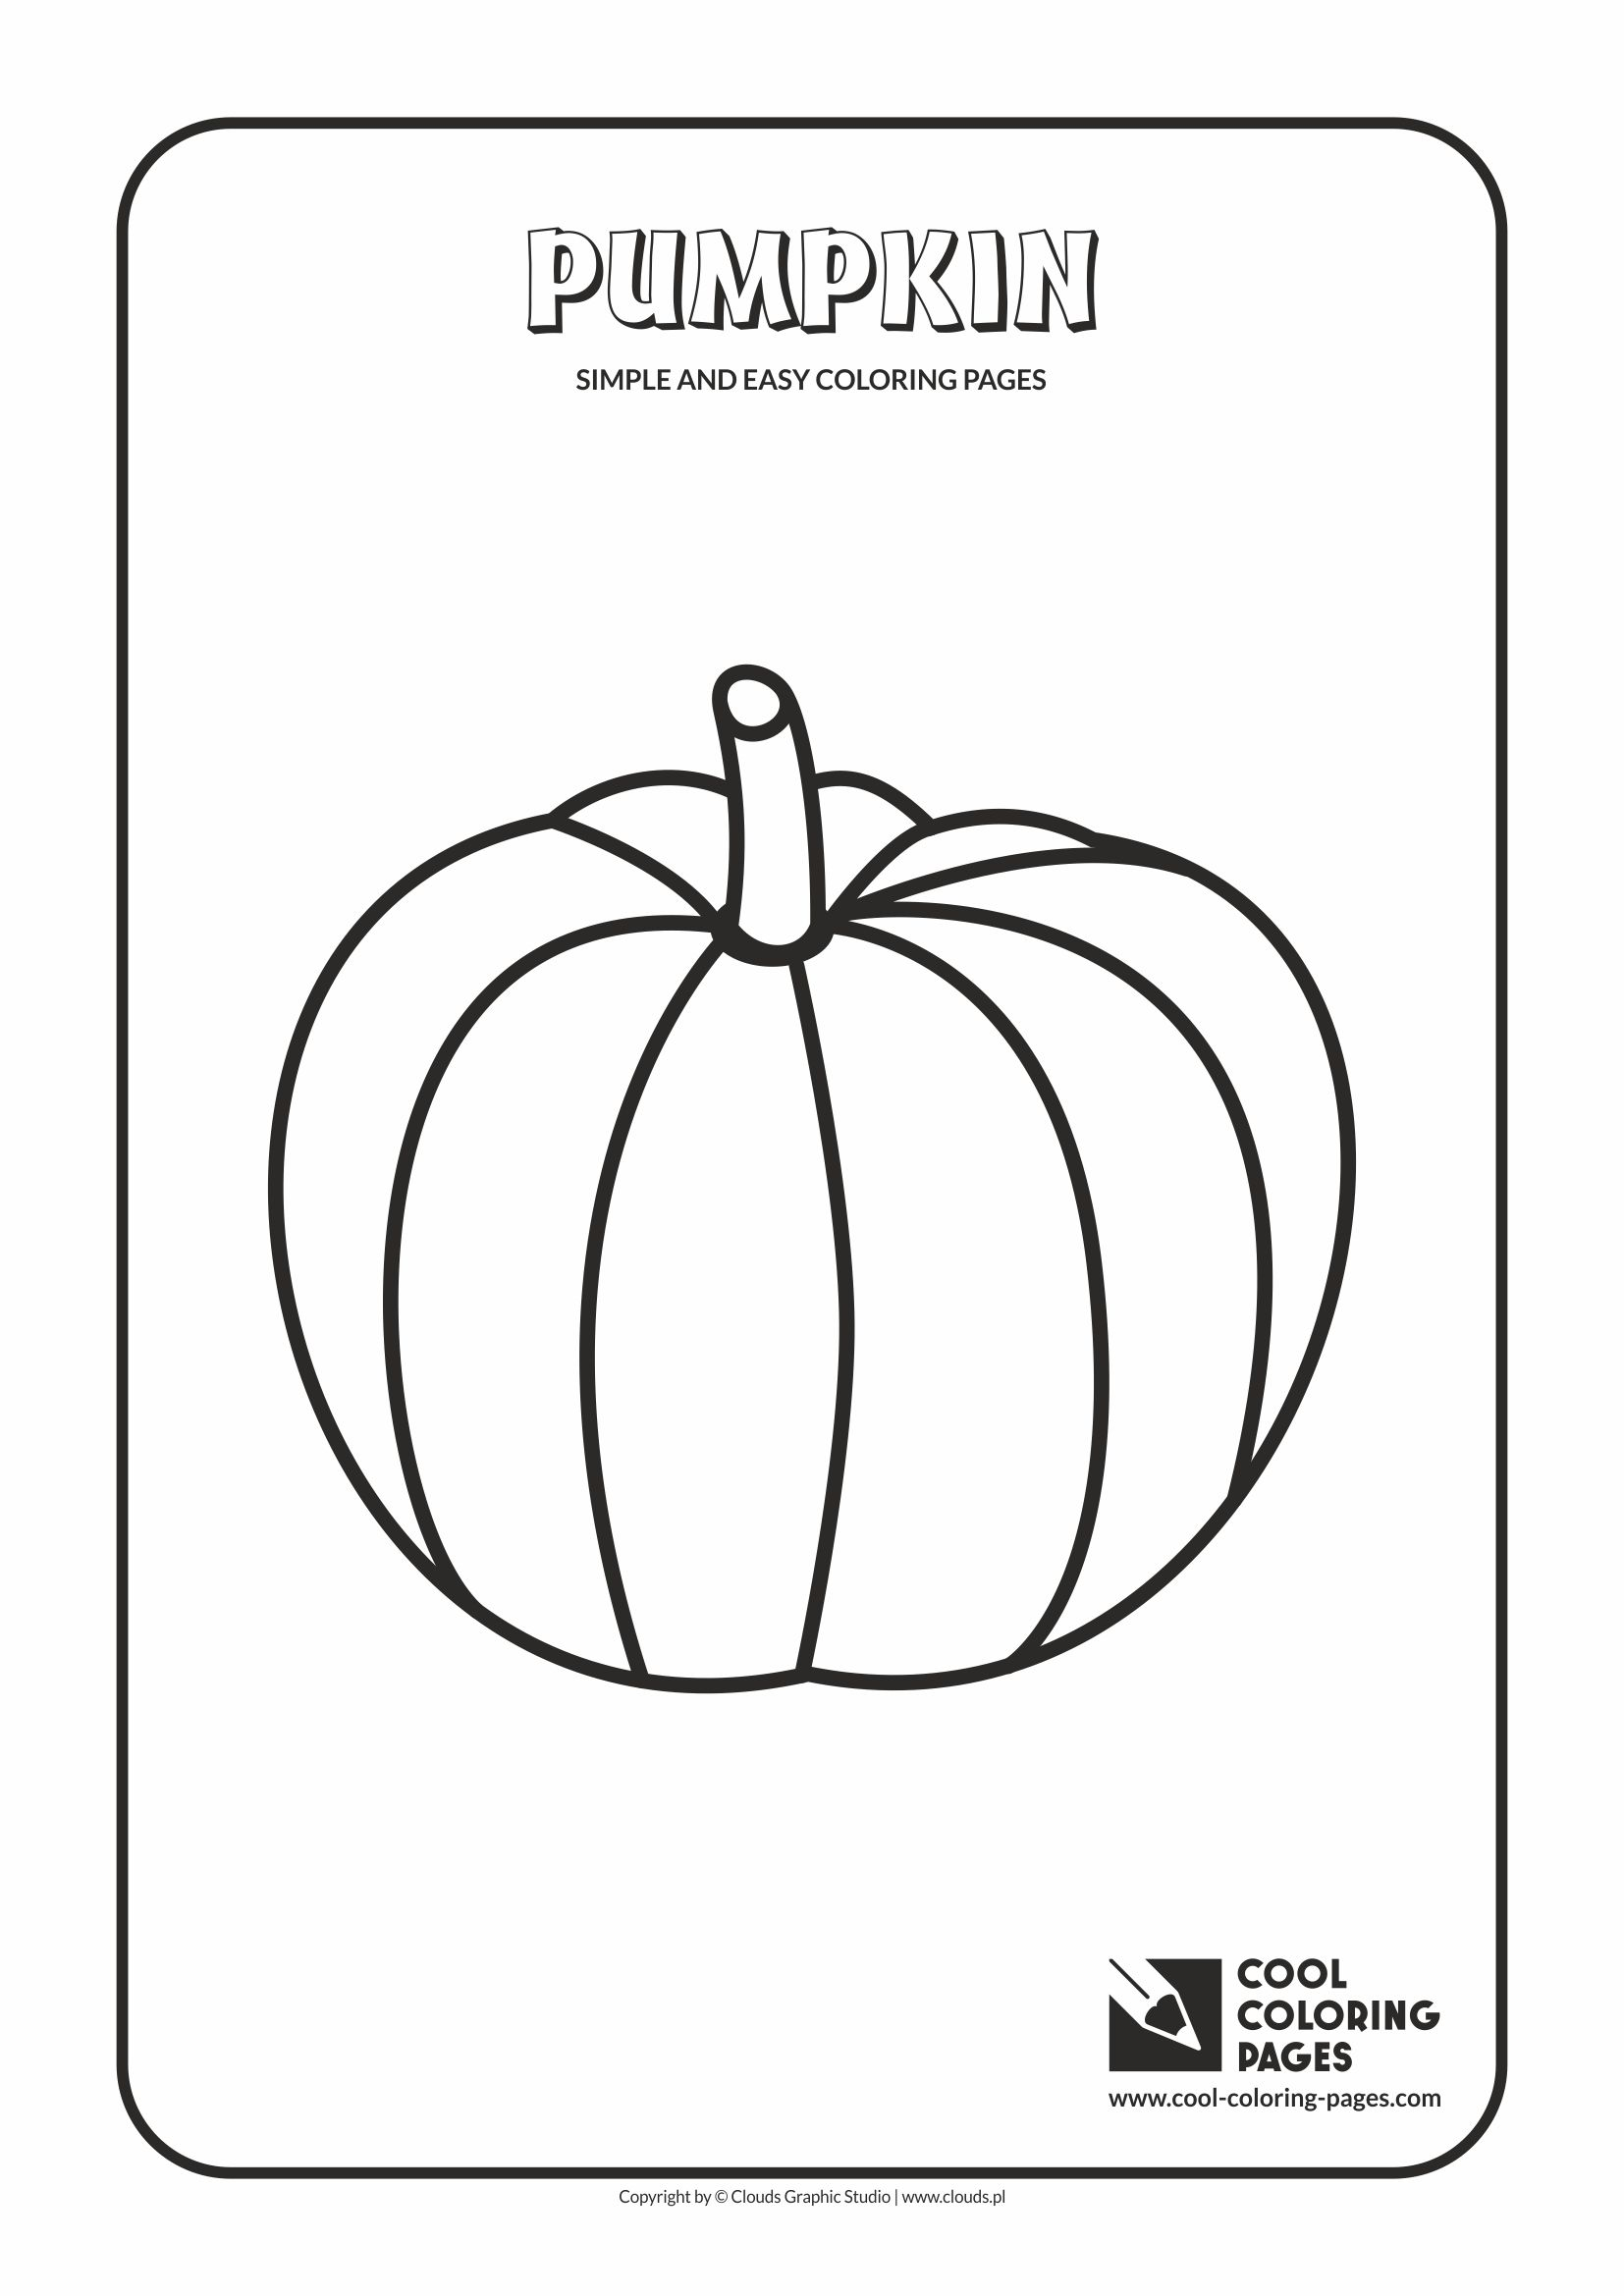 Simple and easy coloring pages for toddlers - Pumpkin